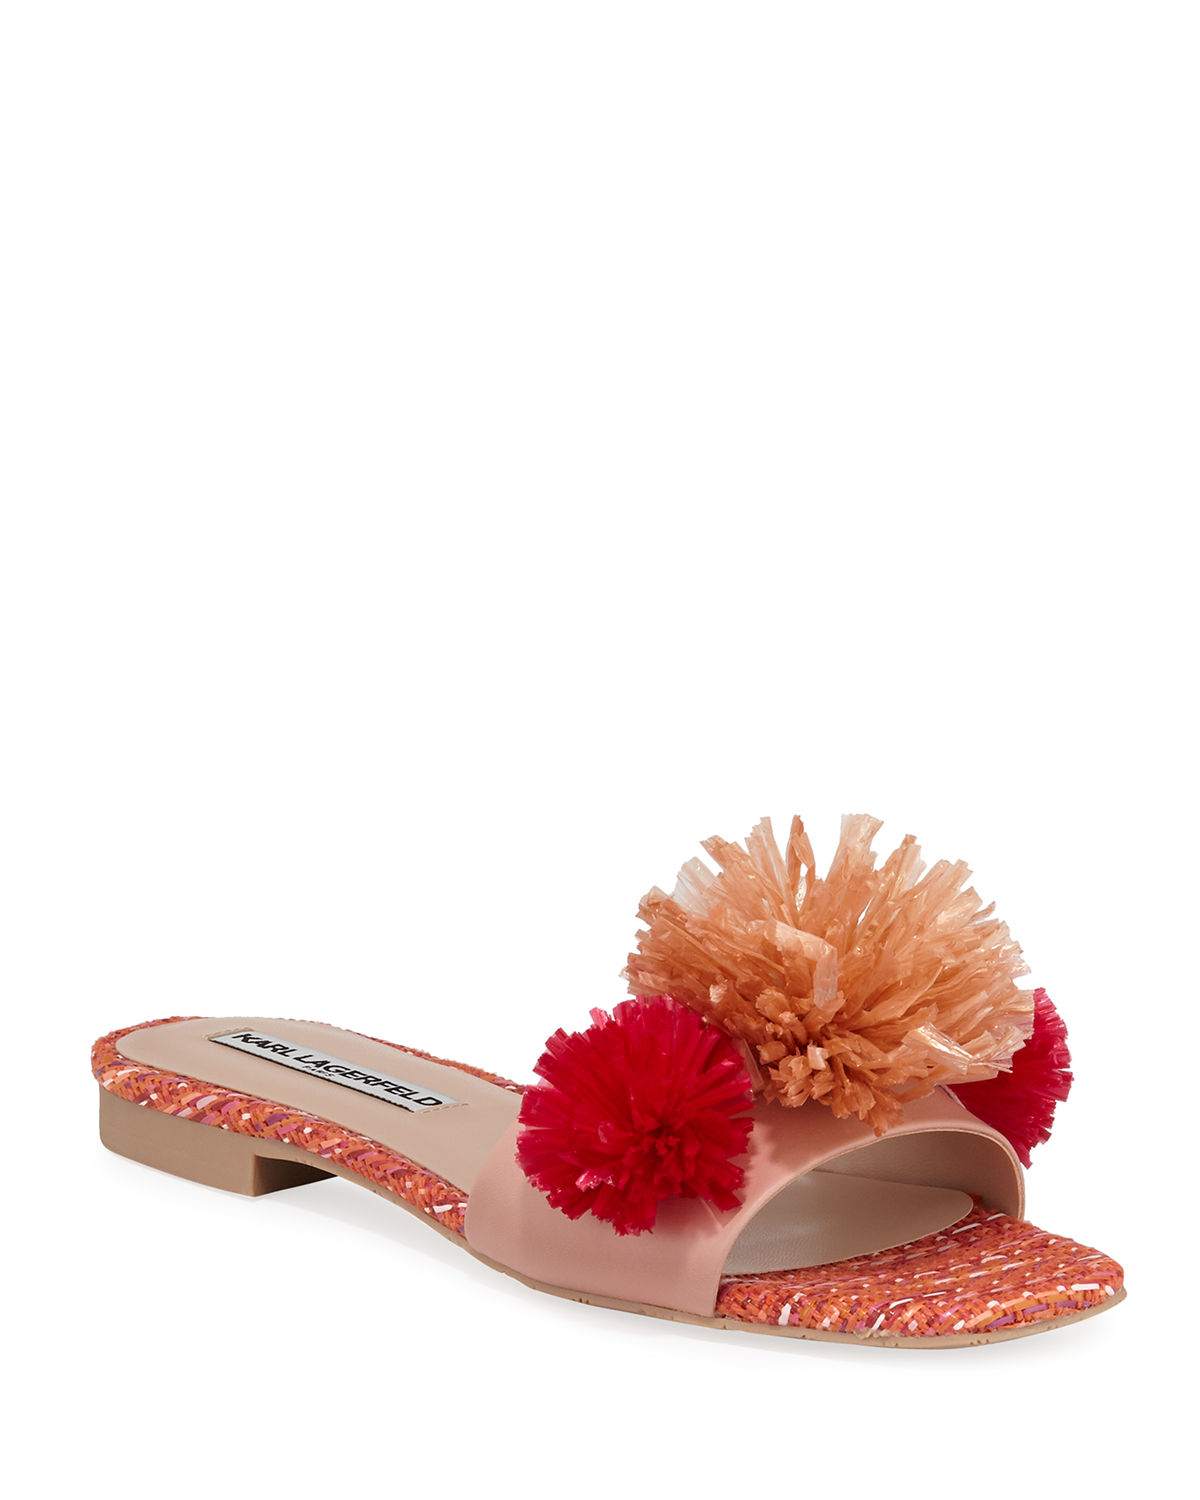 Karl Lagerfeld Sandals RAINY LEATHER RAFFIA POMPOM SLIDE SANDALS